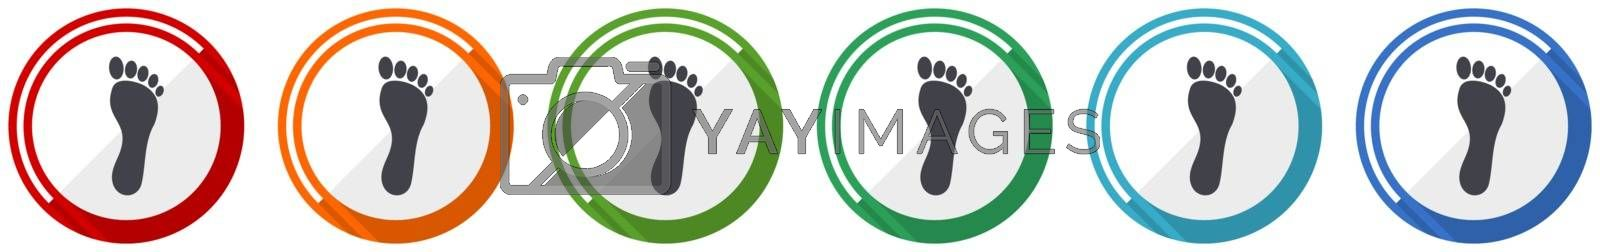 Foot icon set, flat design vector illustration in 6 colors options for webdesign and mobile applications